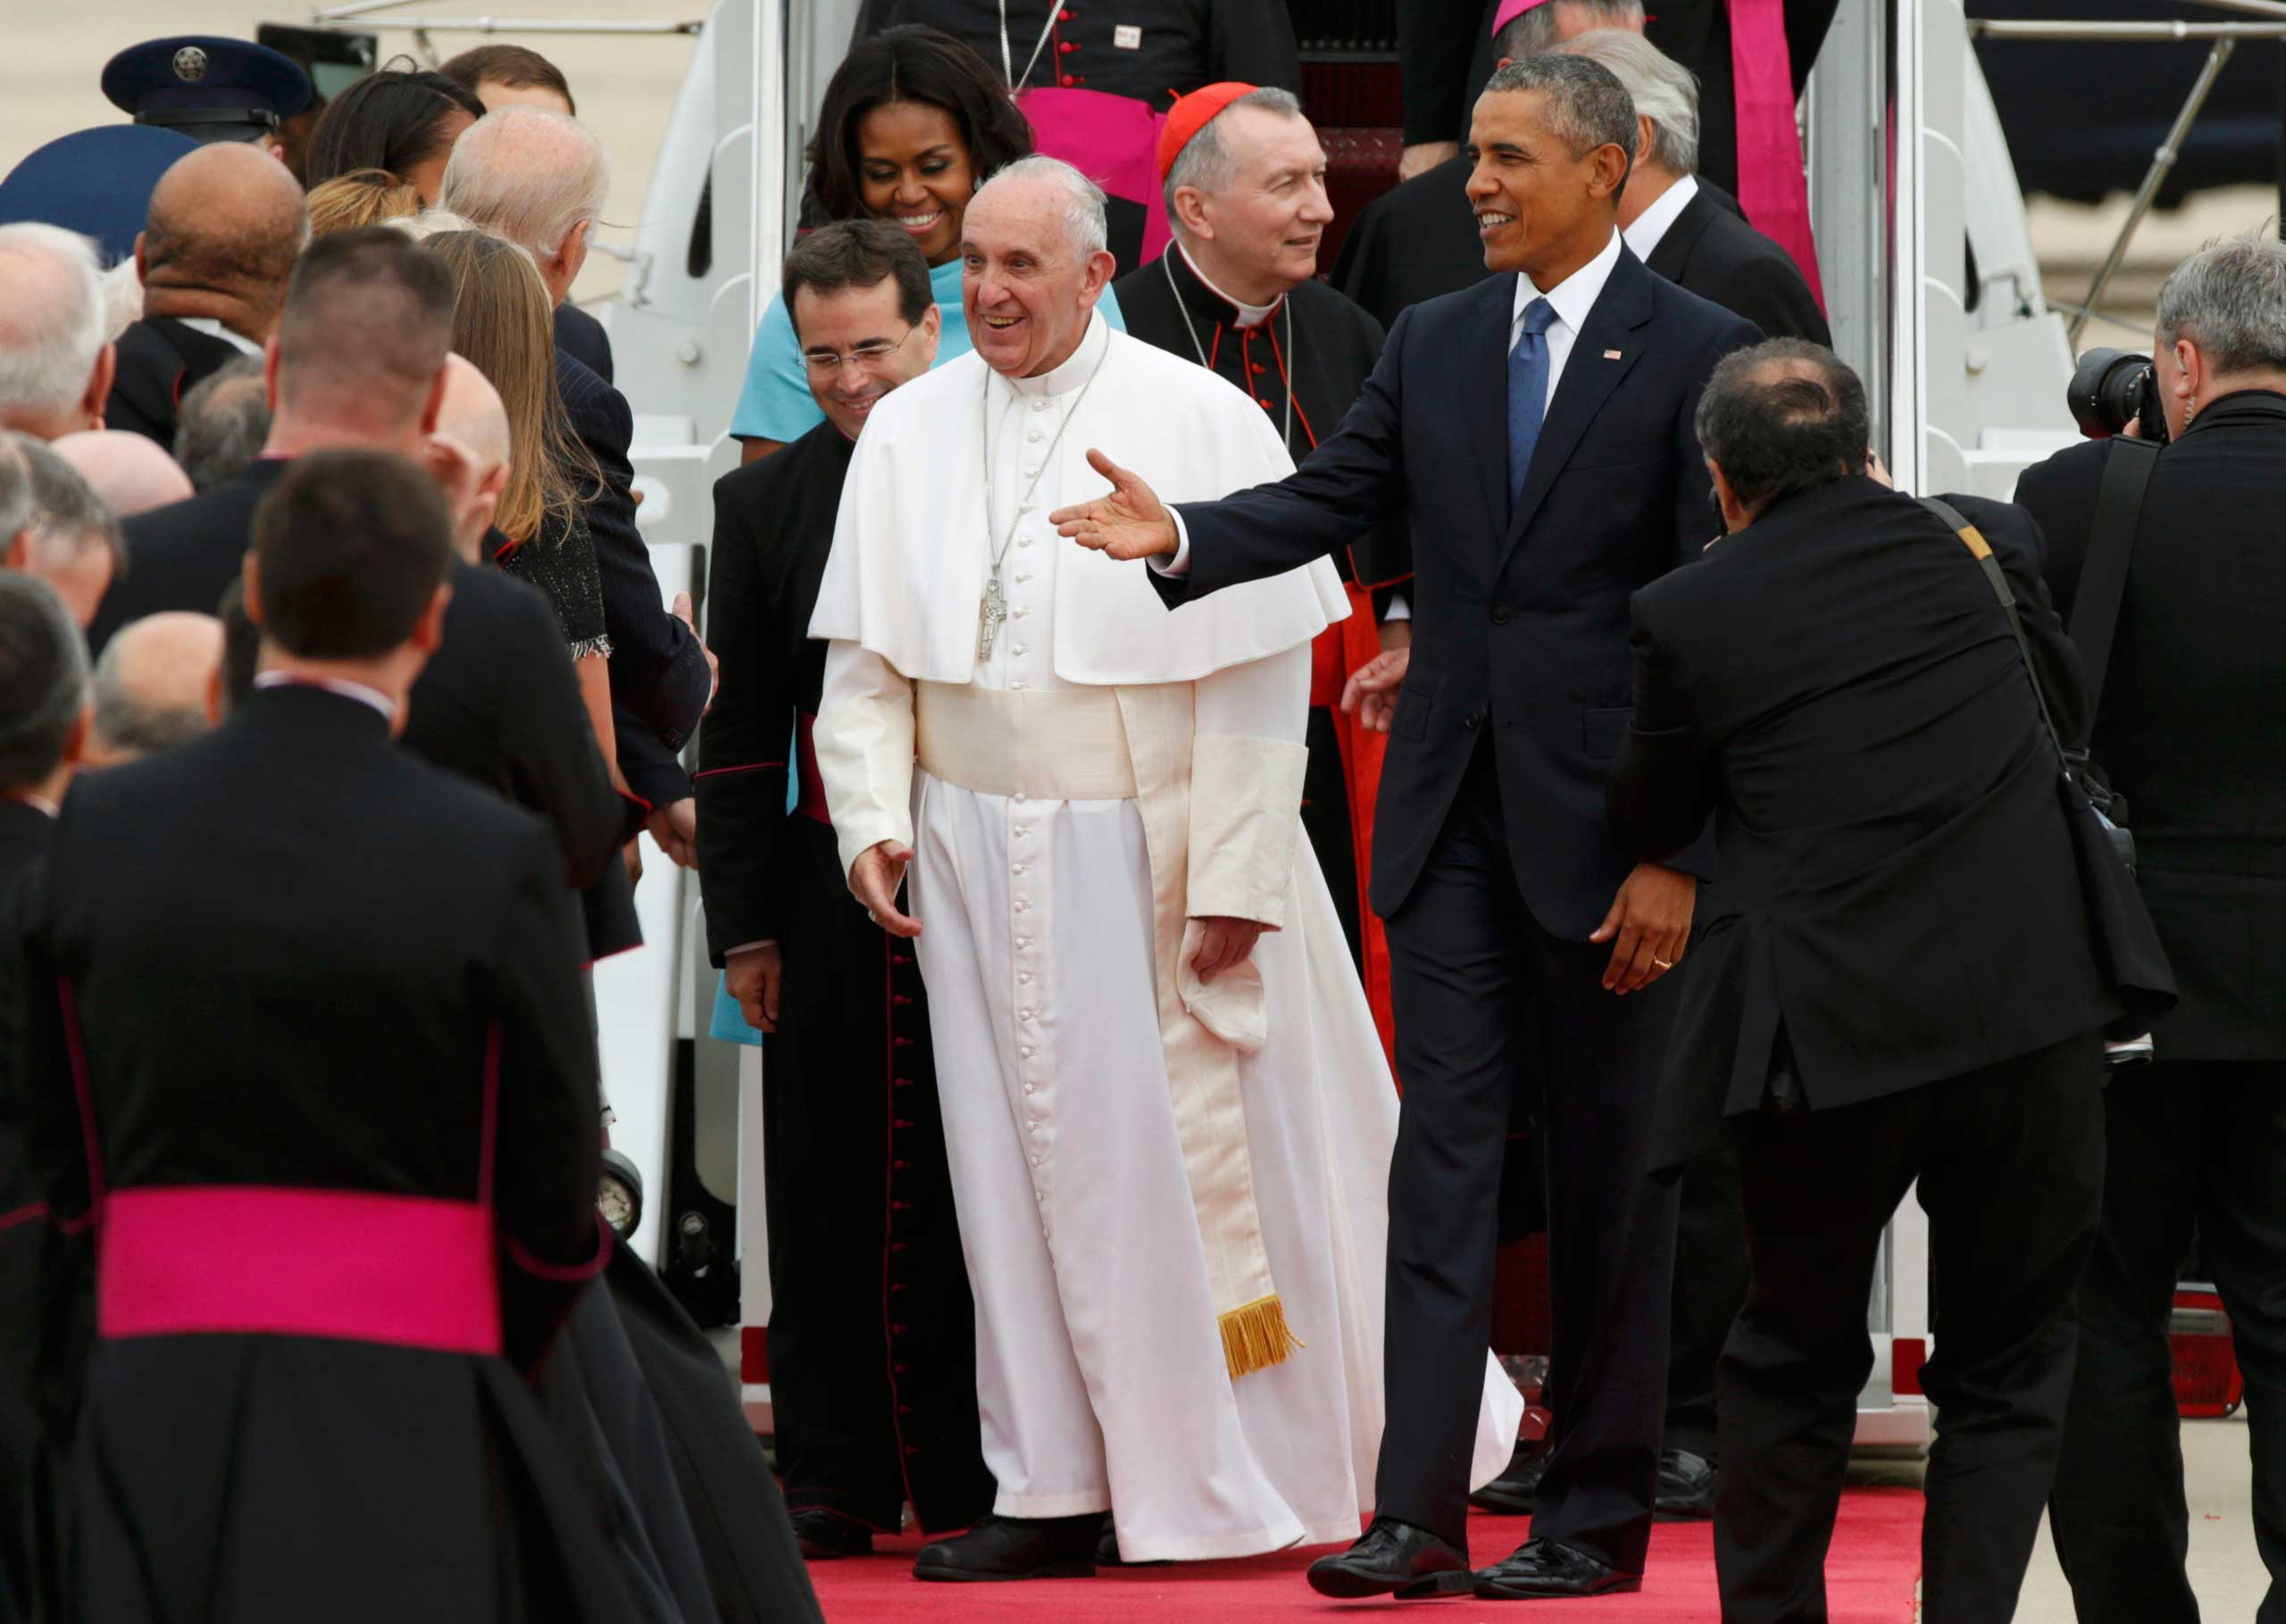 President Barack Obama welcomes Pope Francis to the United States as the Pontiff greets dignitaries upon his arrival at Joint Base Andrews outside Washington, on Sept. 22, 2015.